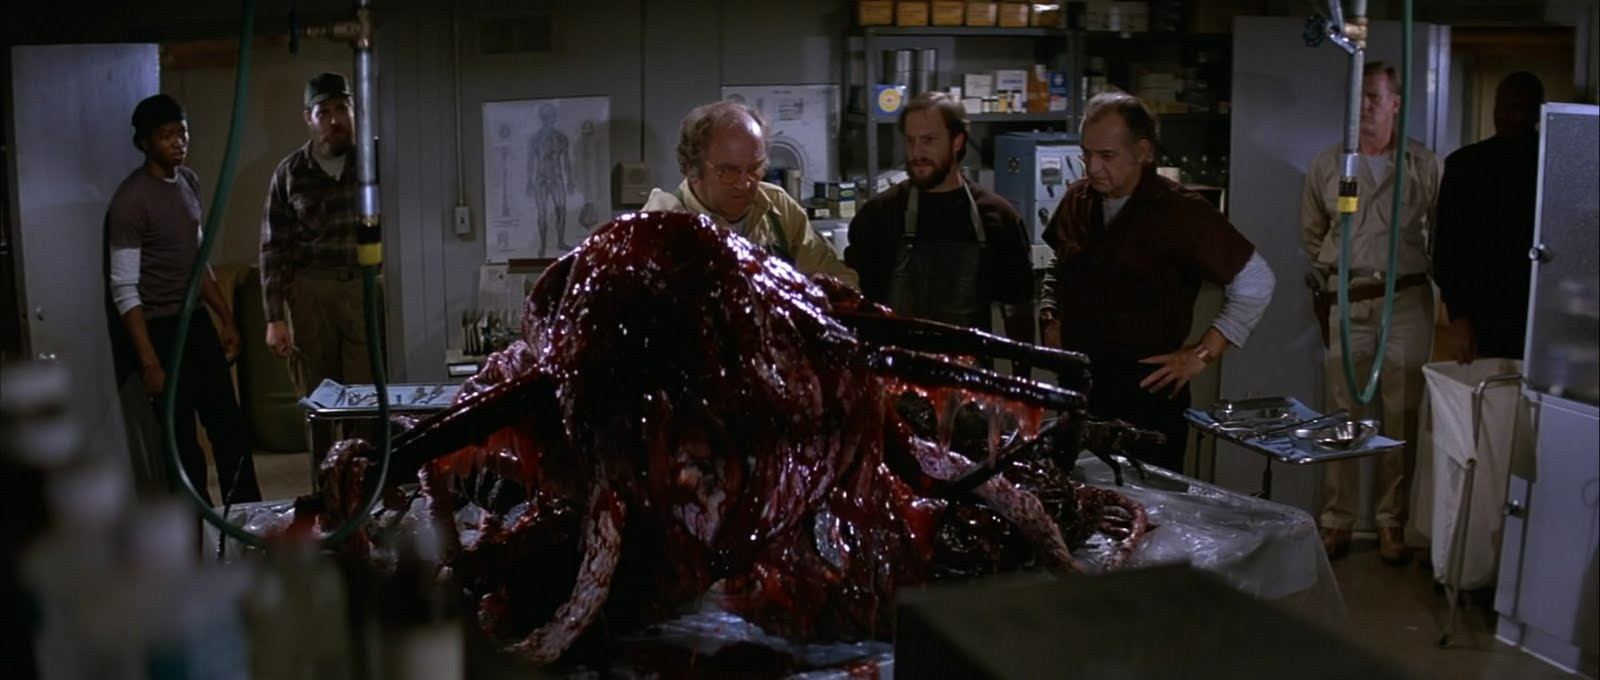 isolated paranoia john carpenter s the thing father son